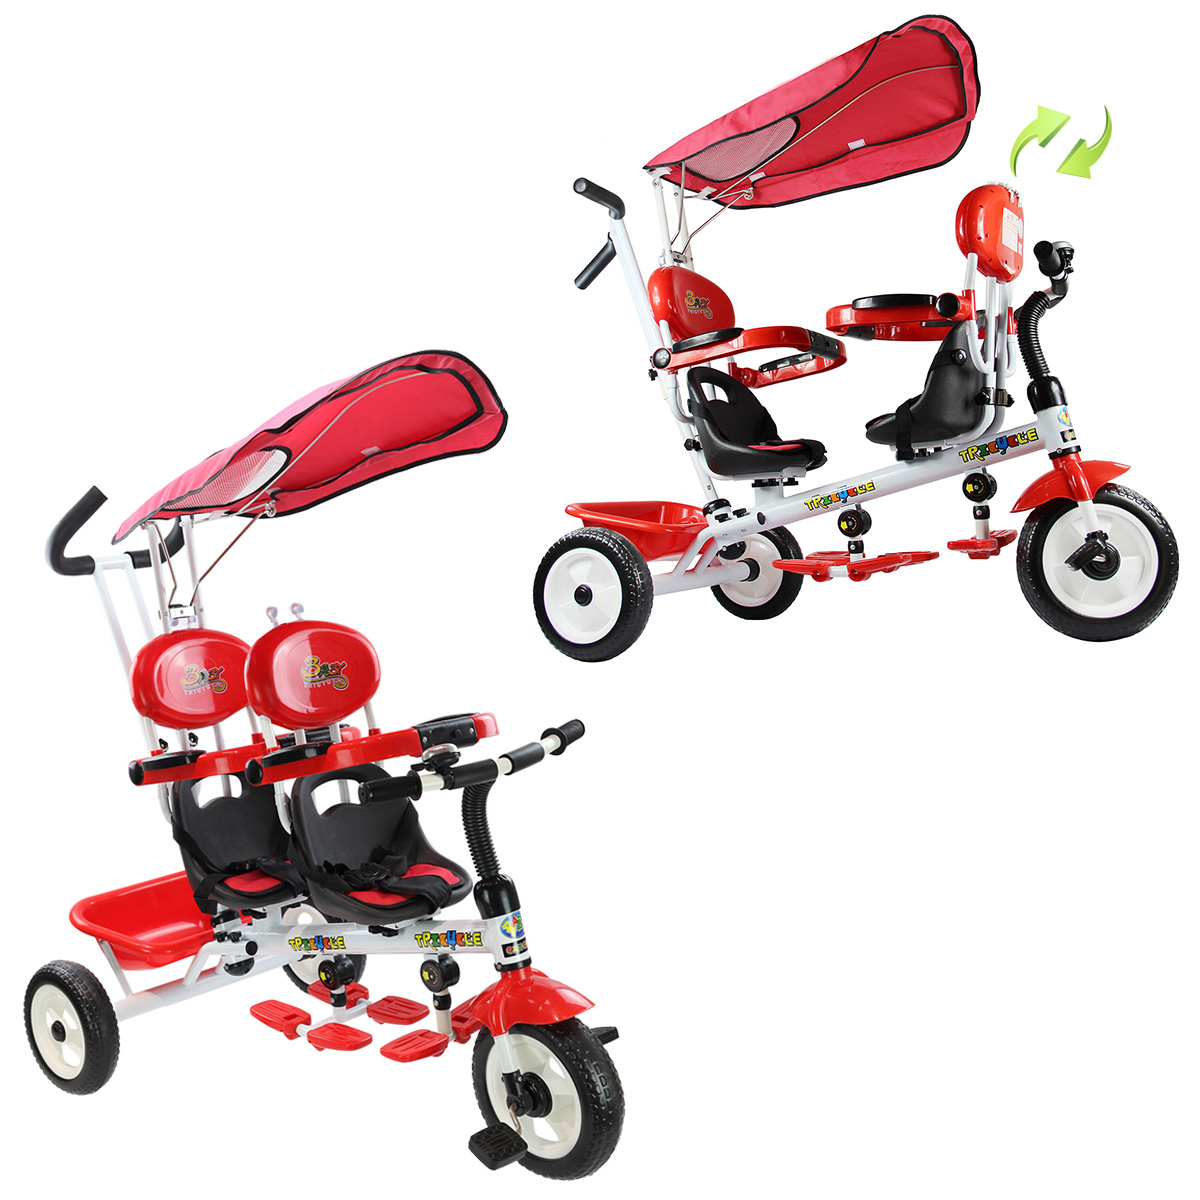 Costway 4 In 1 Twins Kids Baby Stroller Tricycle Safety Double Rotatable Seat w/ Basket Red